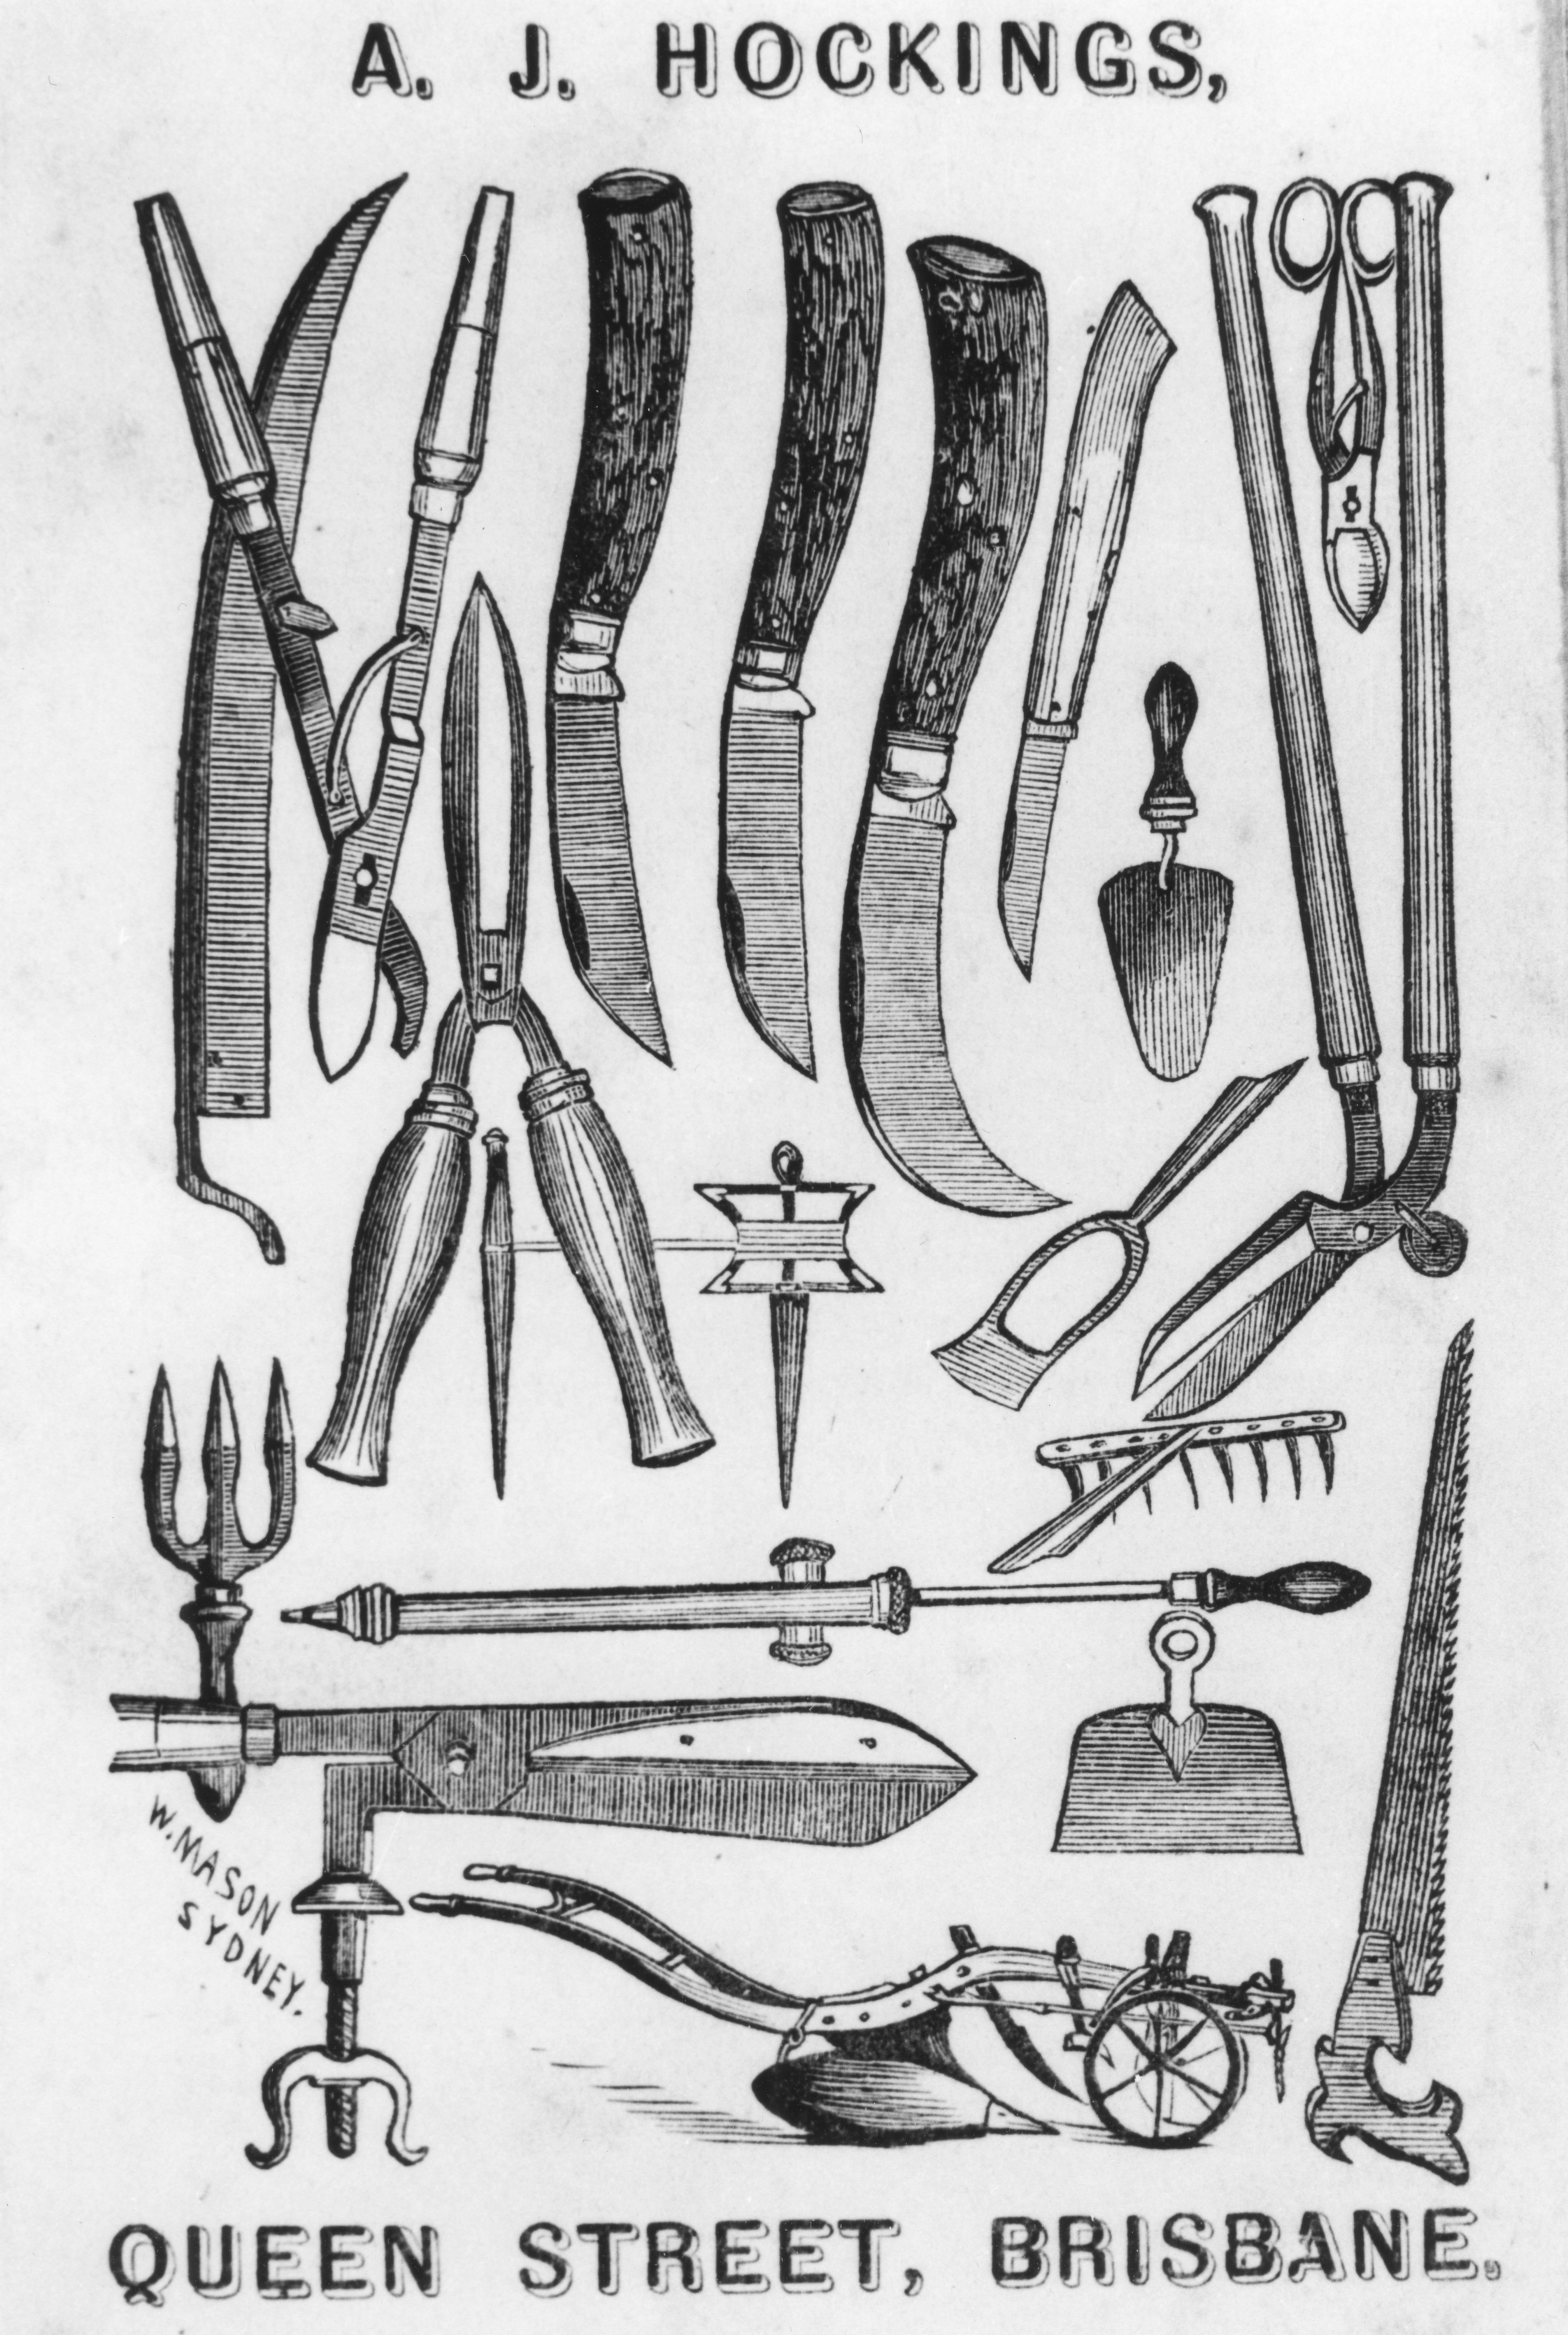 Advertisement featuring gardening tools sold by A. J. Hockings Queen Street Brisbane